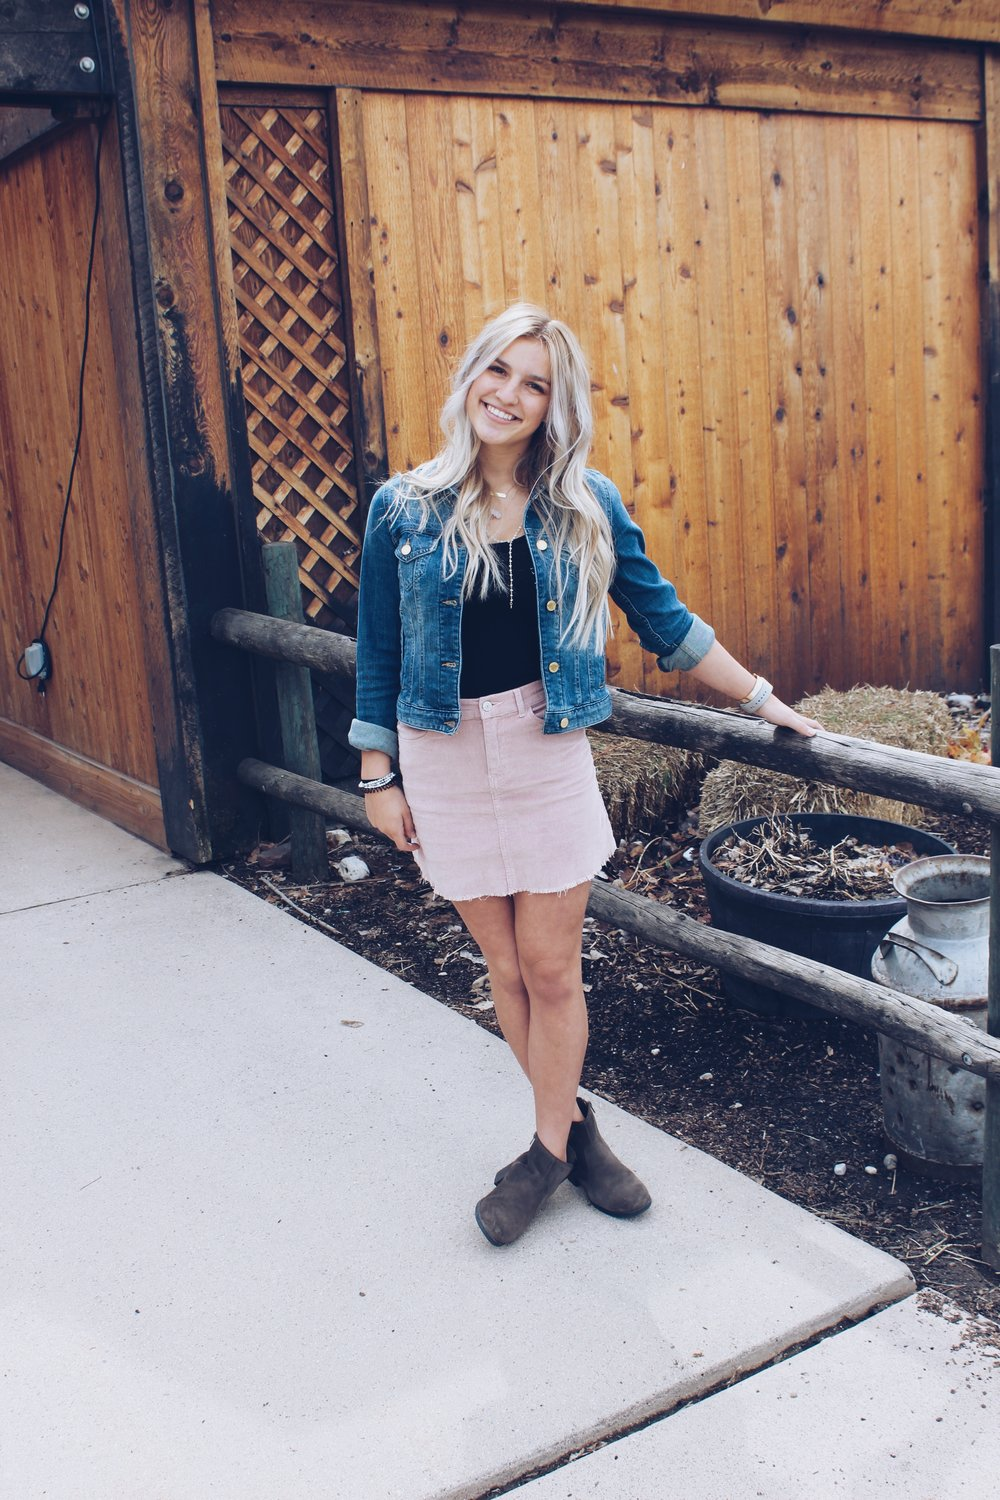 Jean Jackets and Skirts - 4 Ways to Style